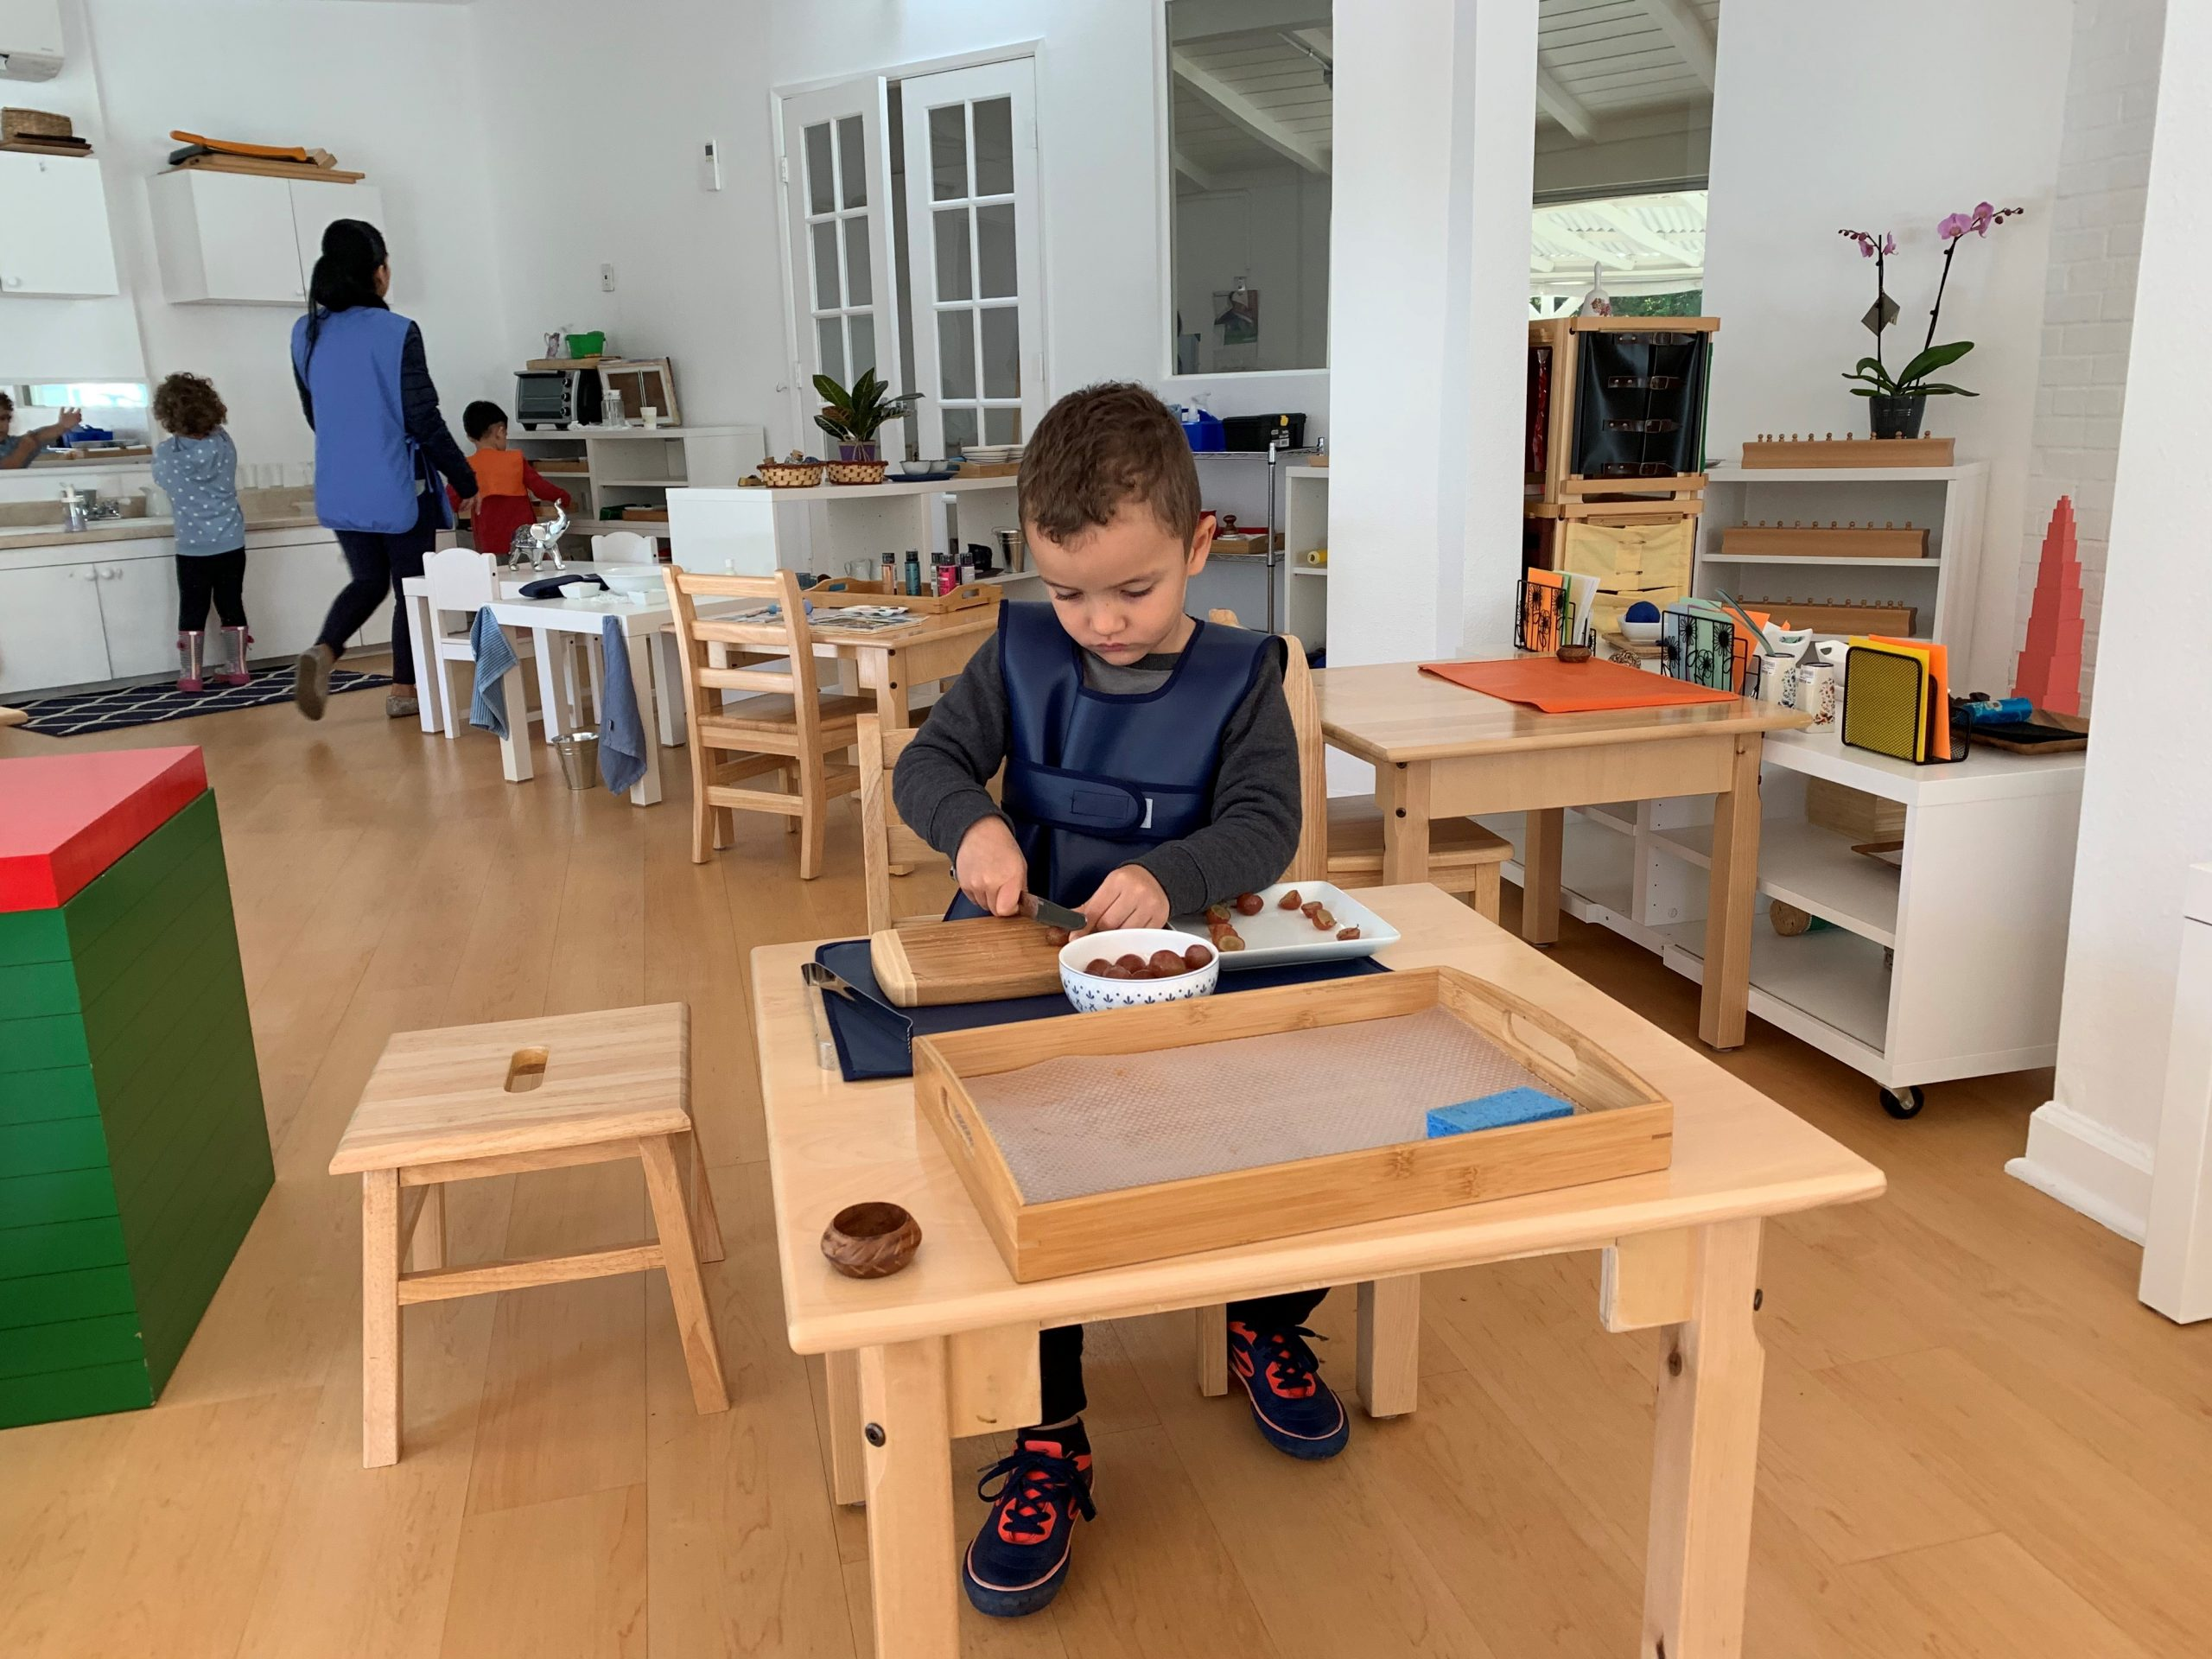 Independent Toddler cutting fruit at La Jolla Montessori school